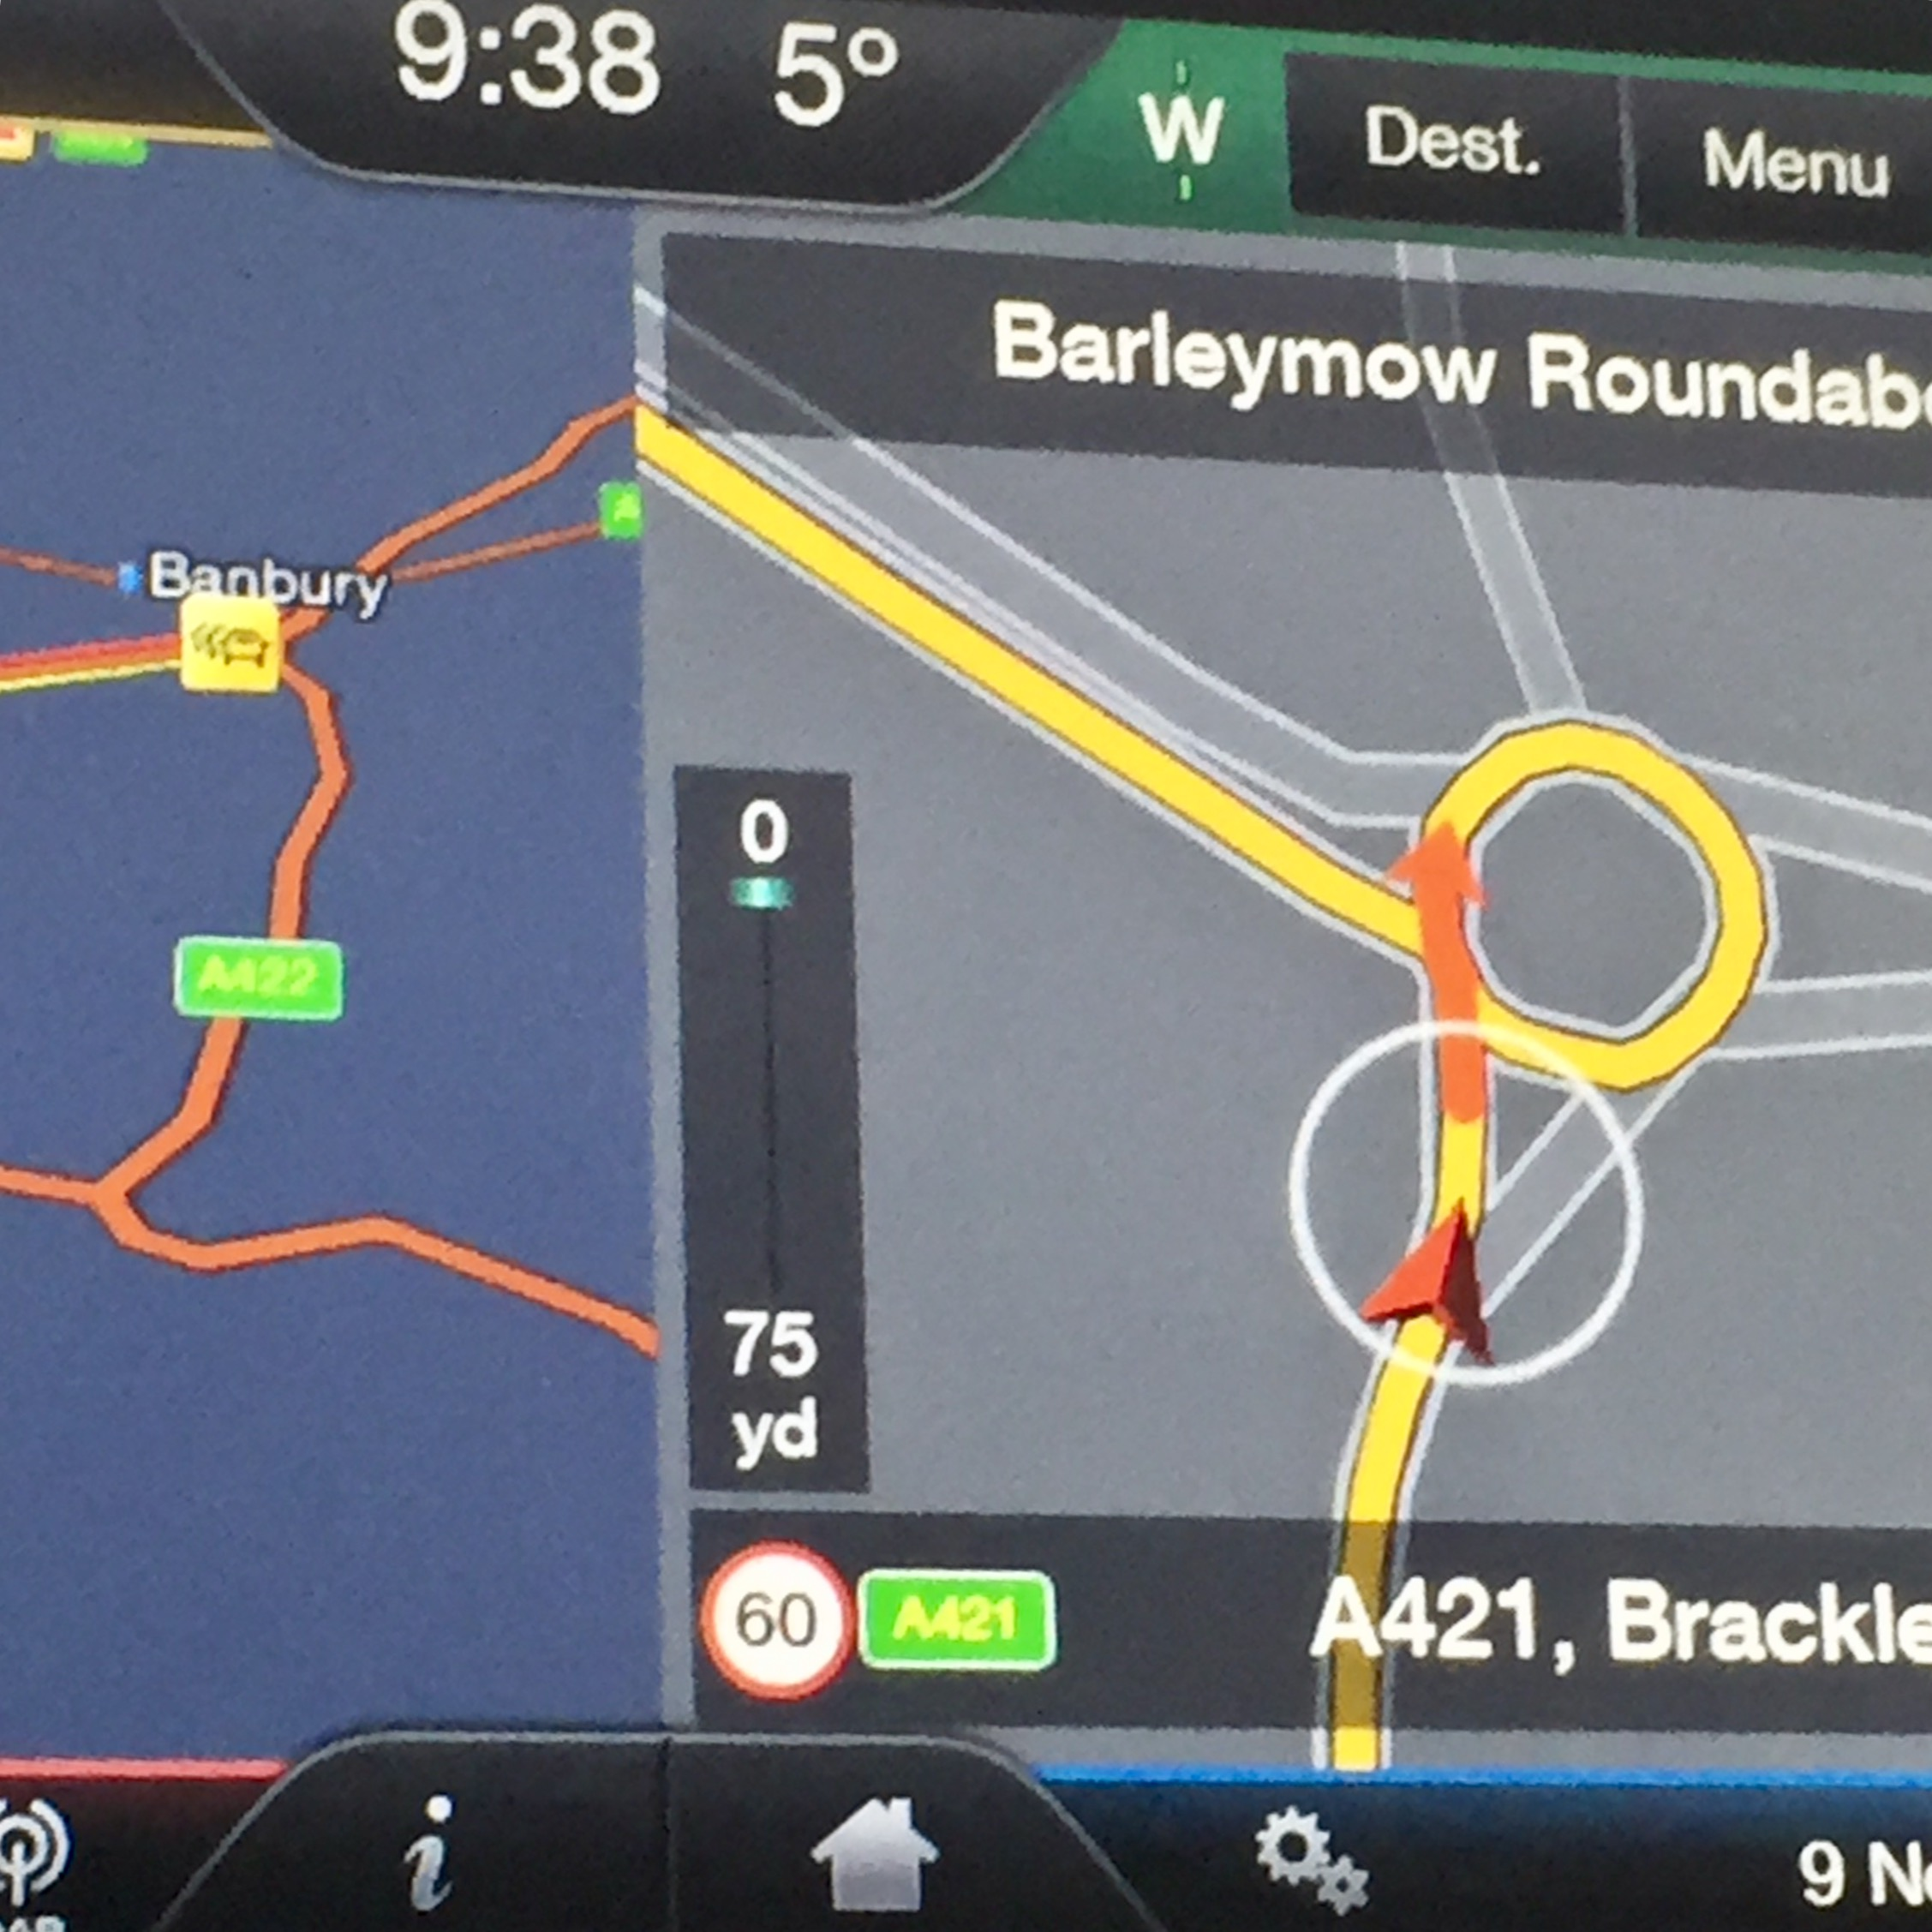 Satnav misbehaving complicating what is usually a simple left turn at a roundabout. Image credit: Somaya Langley.